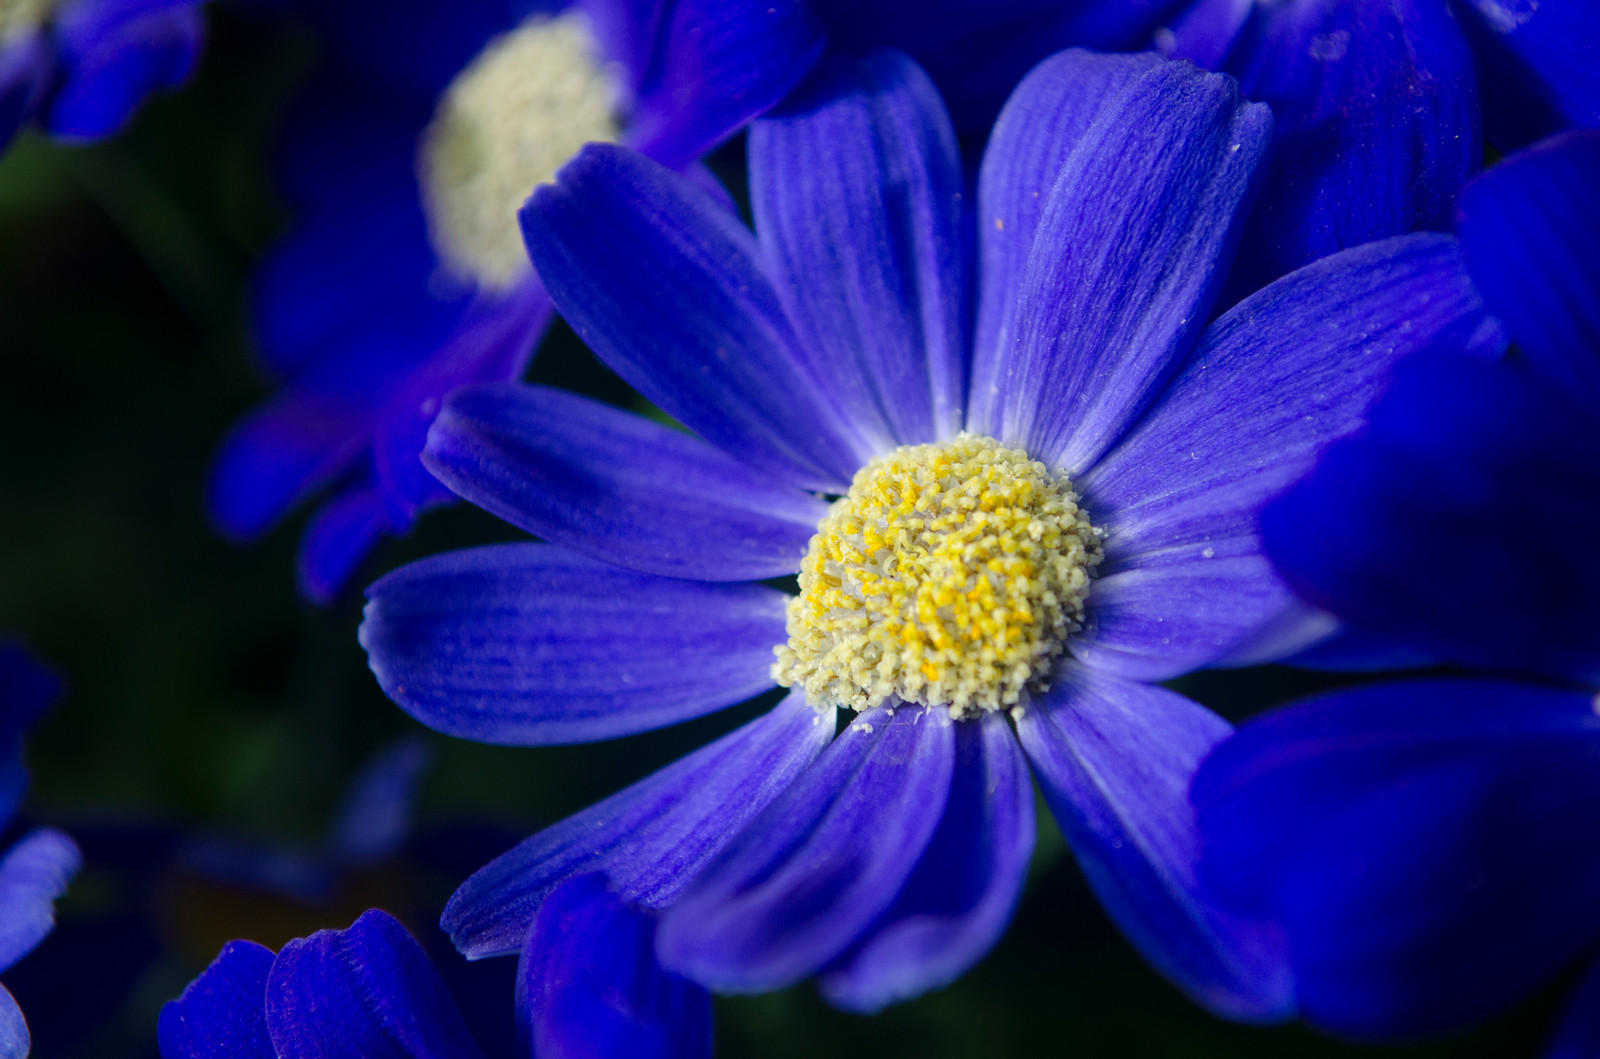 Blue flower with yellow center choice image flower decoration ideas blue flower with yellow center image collections flower decoration blue flower with yellow center choice image mightylinksfo